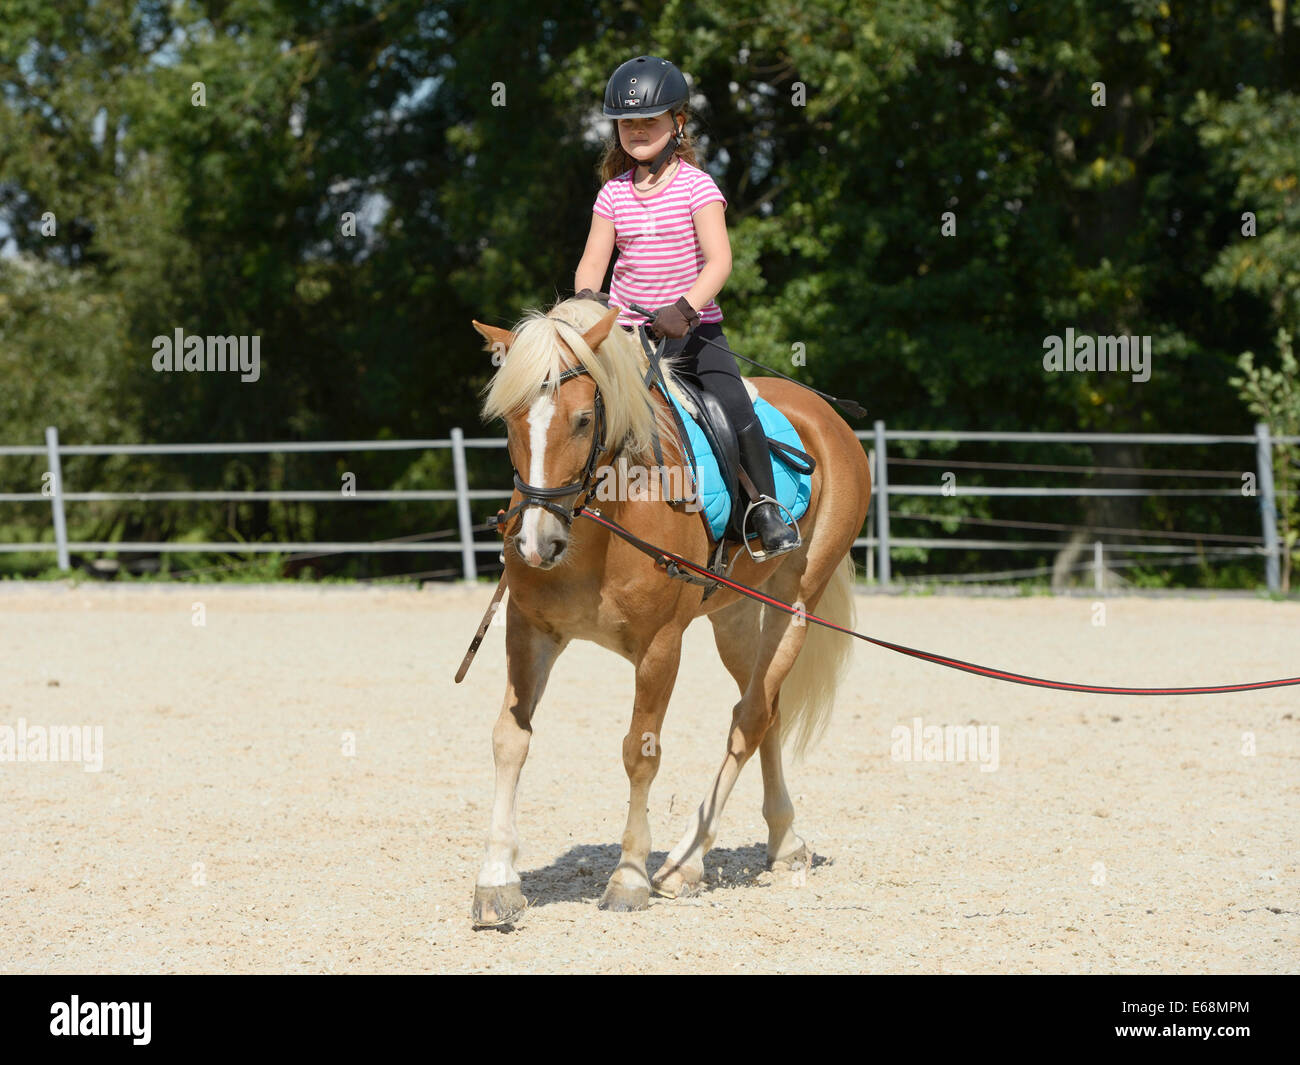 Young girl riding on back of lunged Haflinger horse - Stock Image